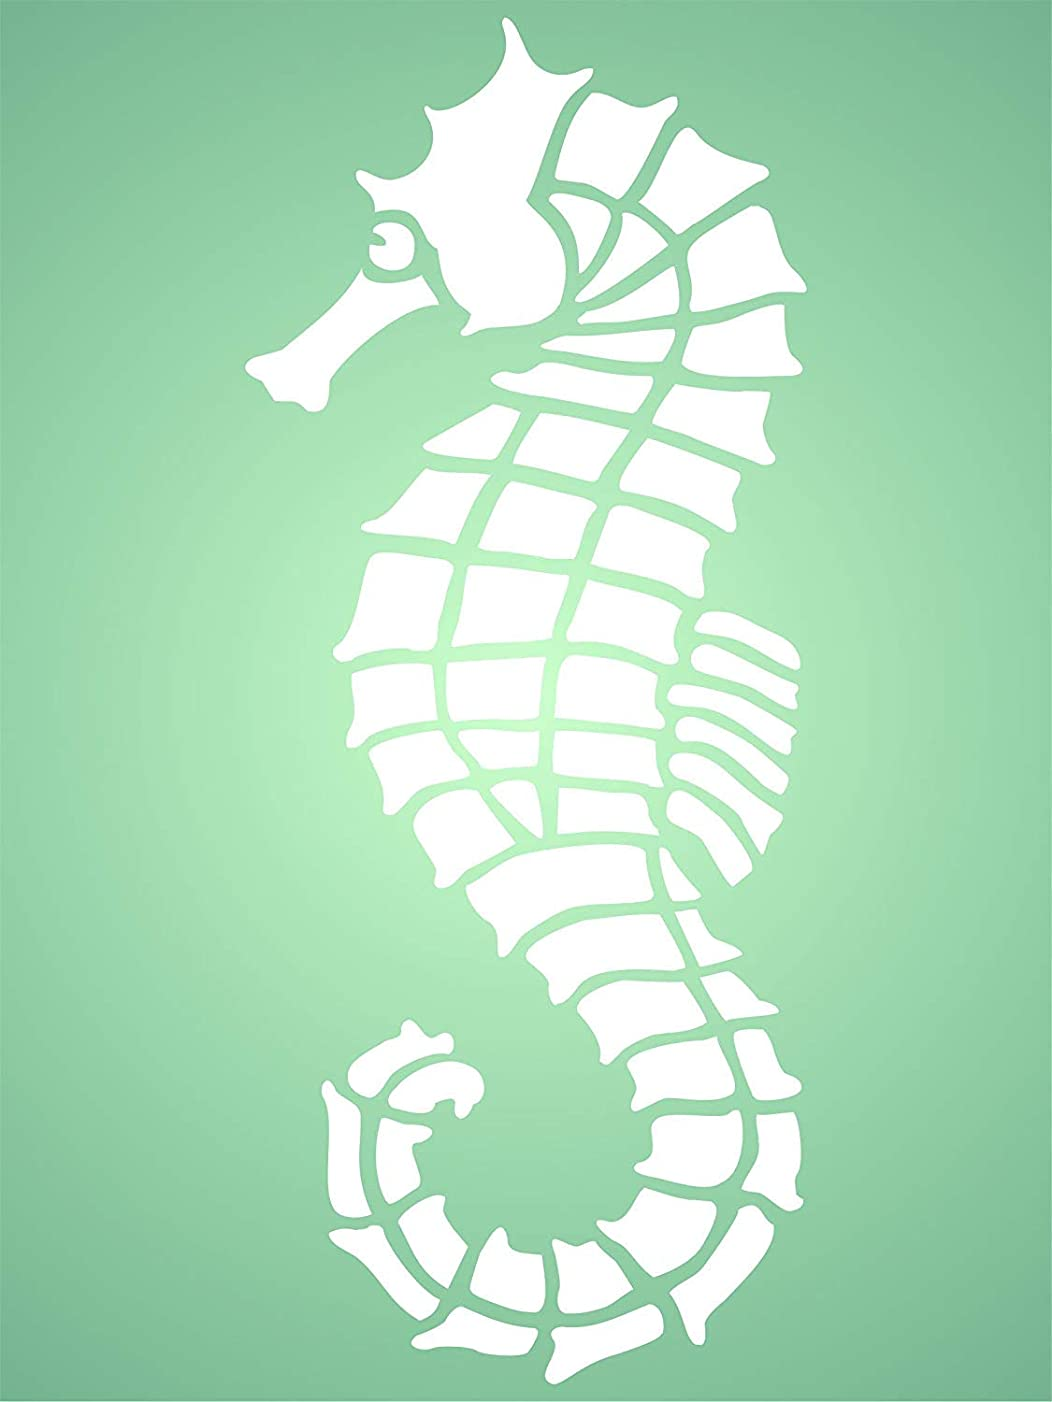 """Seahorse Stencil - (size 3""""w x 7""""h) Reusable Wall Stencils for Painting - Best Quality Wall Art Décor Ideas - Use on Walls, Floors, Fabrics, Glass, Wood, Terracotta, and More…"""